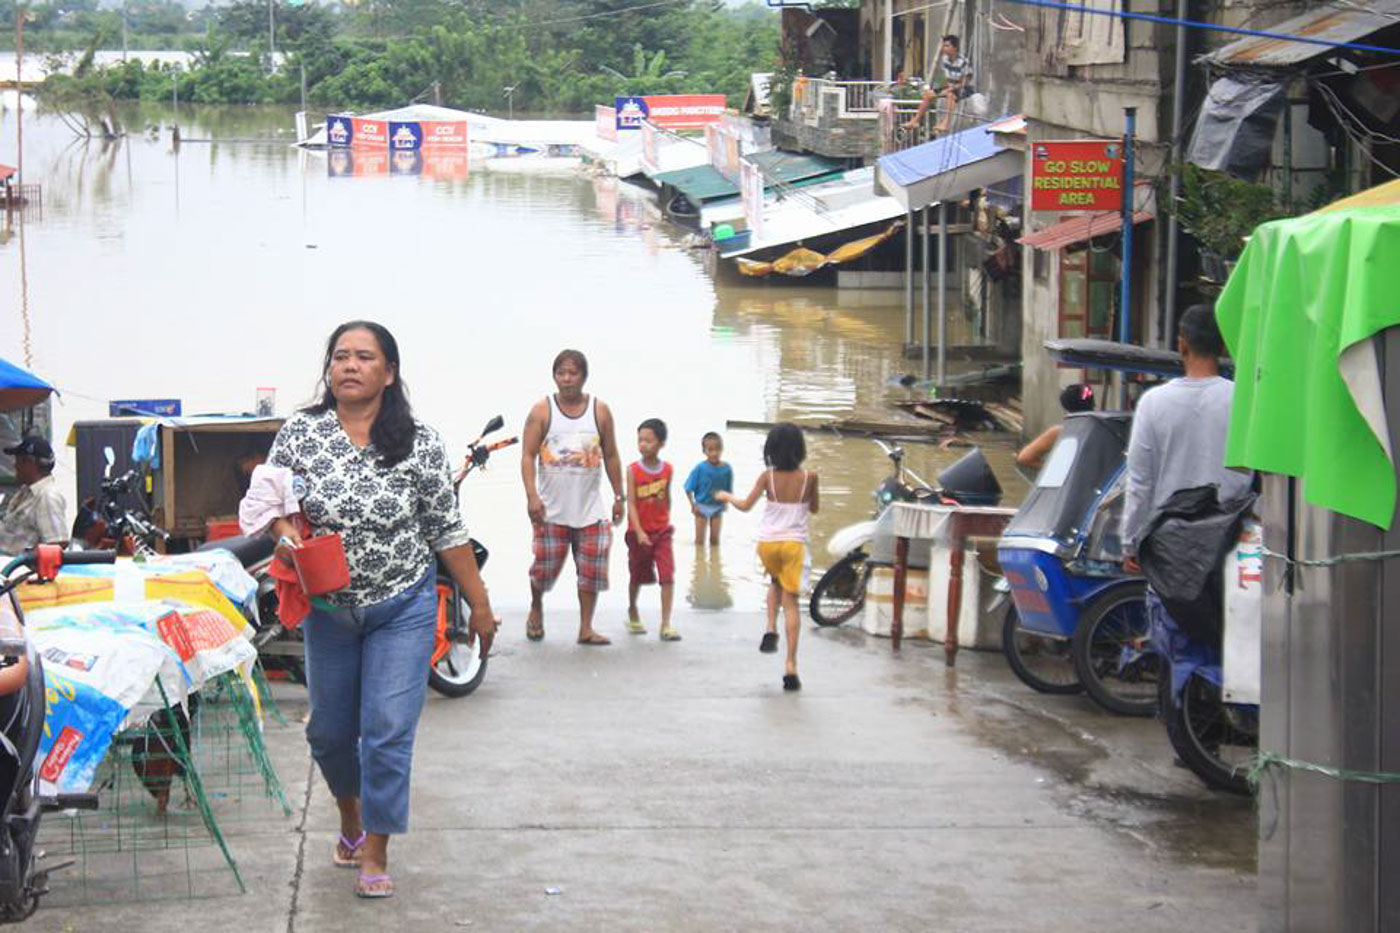 DSWD gives P300,000 in aid to families in flood-hit Cagayan Valley